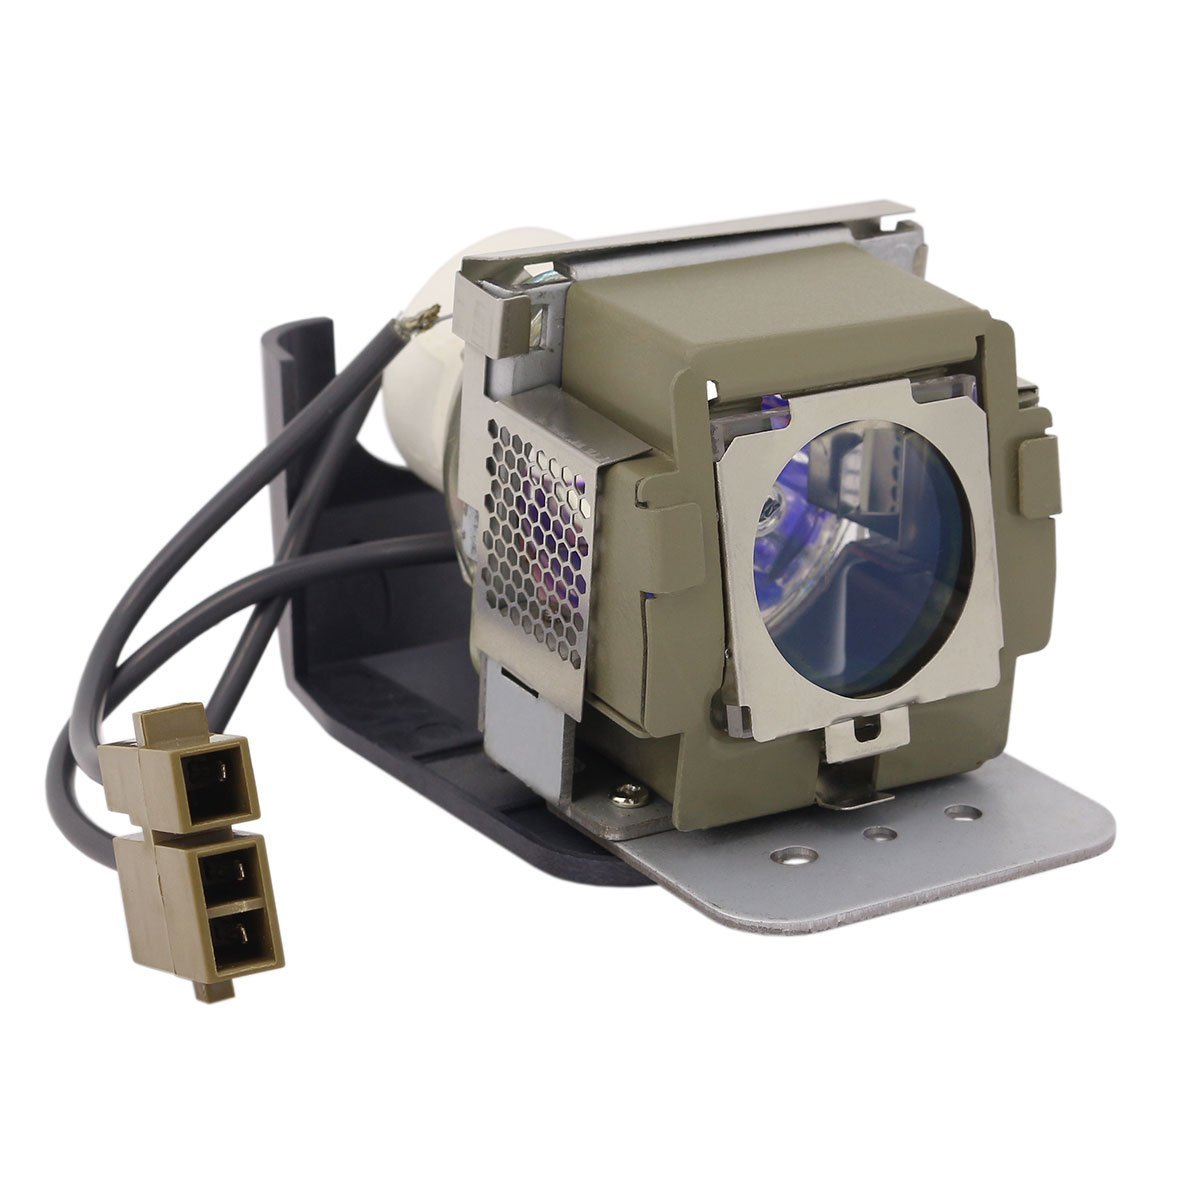 High Quality Replacement Projector Lamp with housing 5J.01201.001 for BENQ MP510 projector with 180 days Warranty projector lamp uhp 300 250w 1 1 e21 7 5j j2n05 011 lamp with housing for sp840